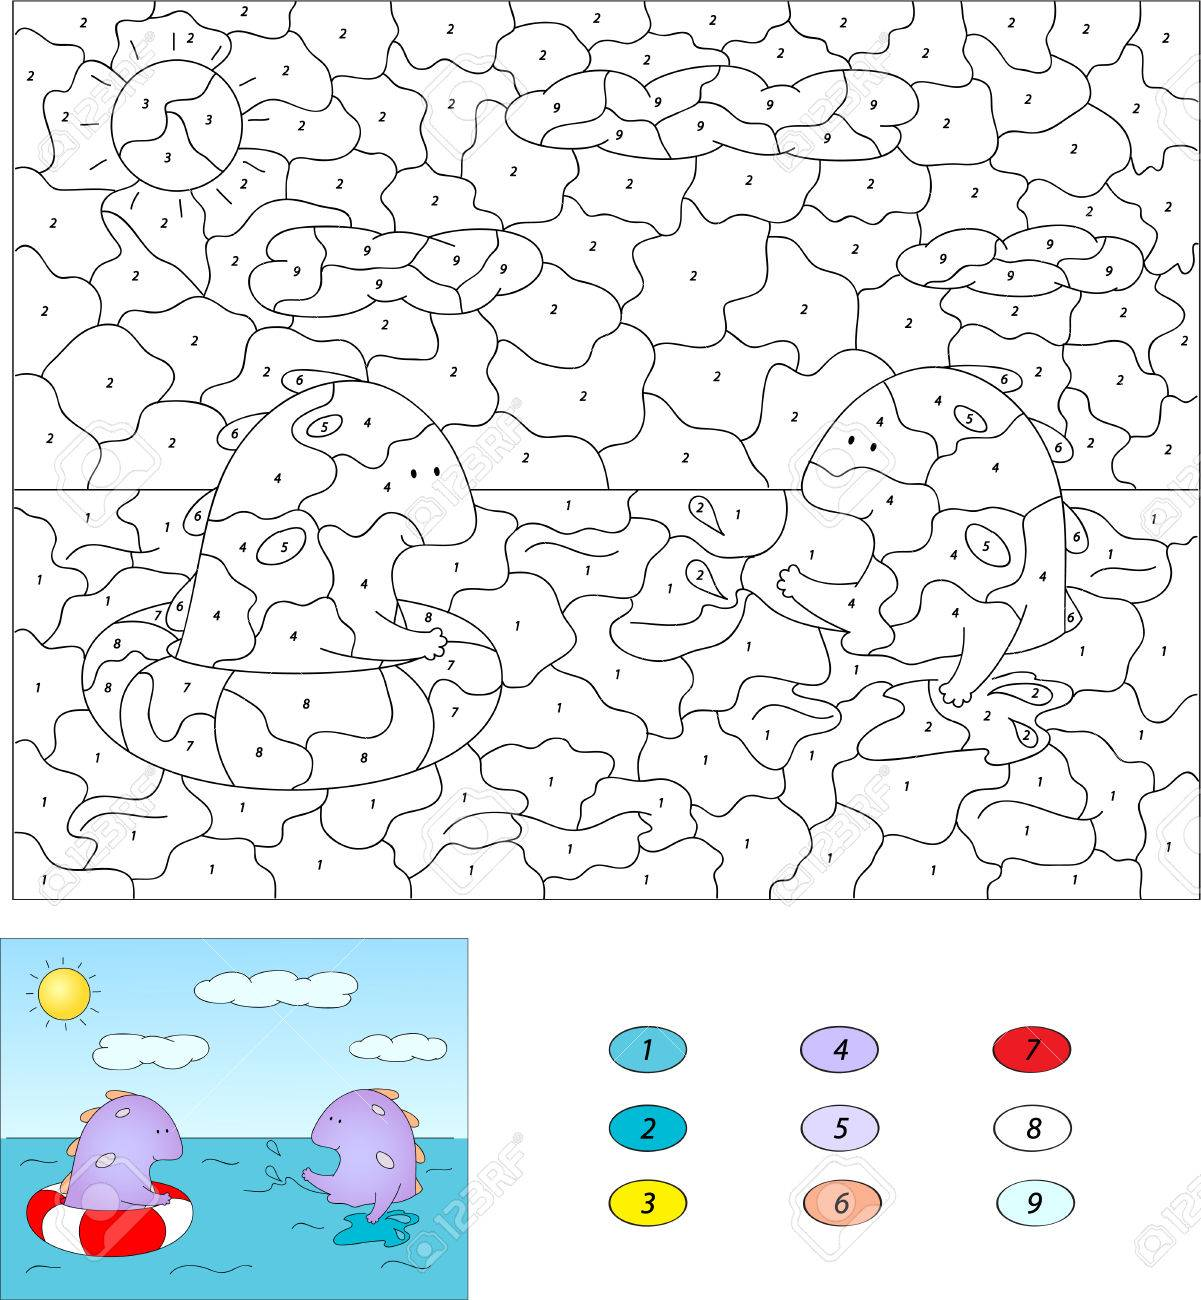 color by number educational game for kids purple dragon swiming